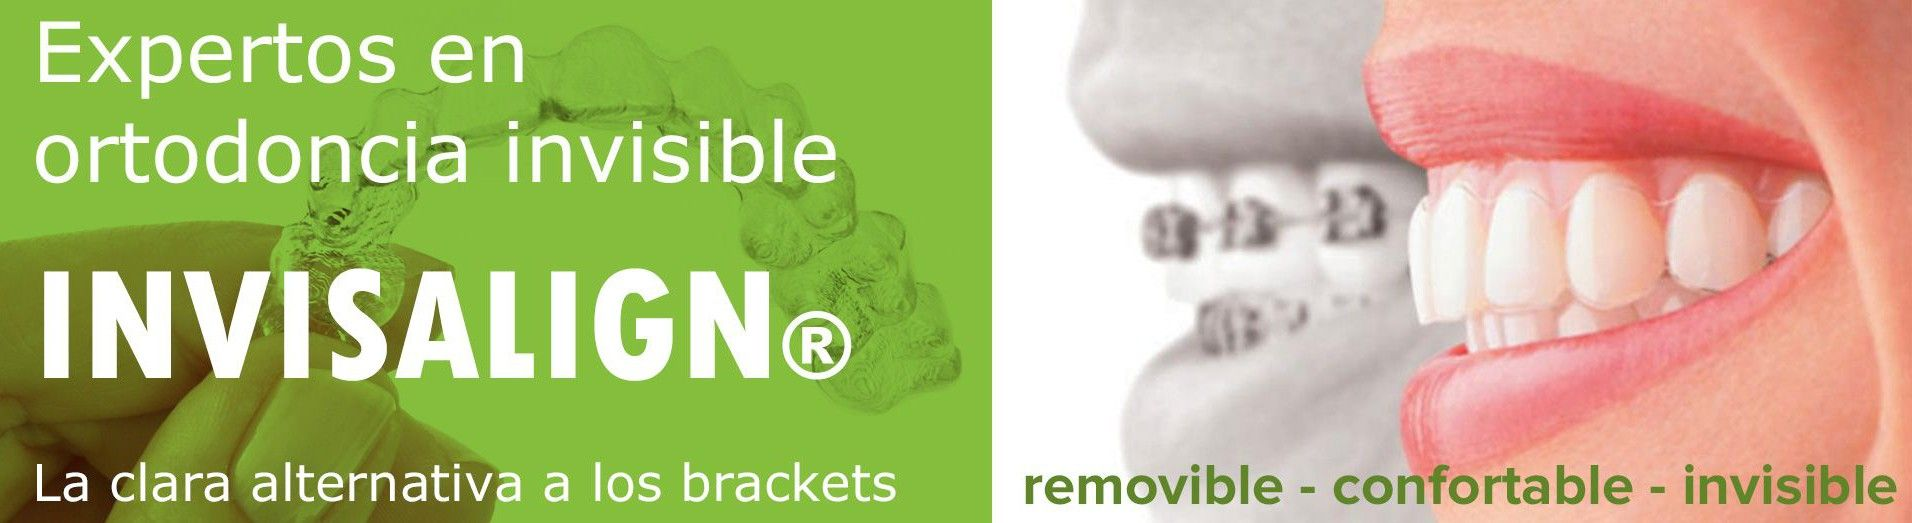 Invisalign Cordoba Clinica Dental Ventosa Sanchez